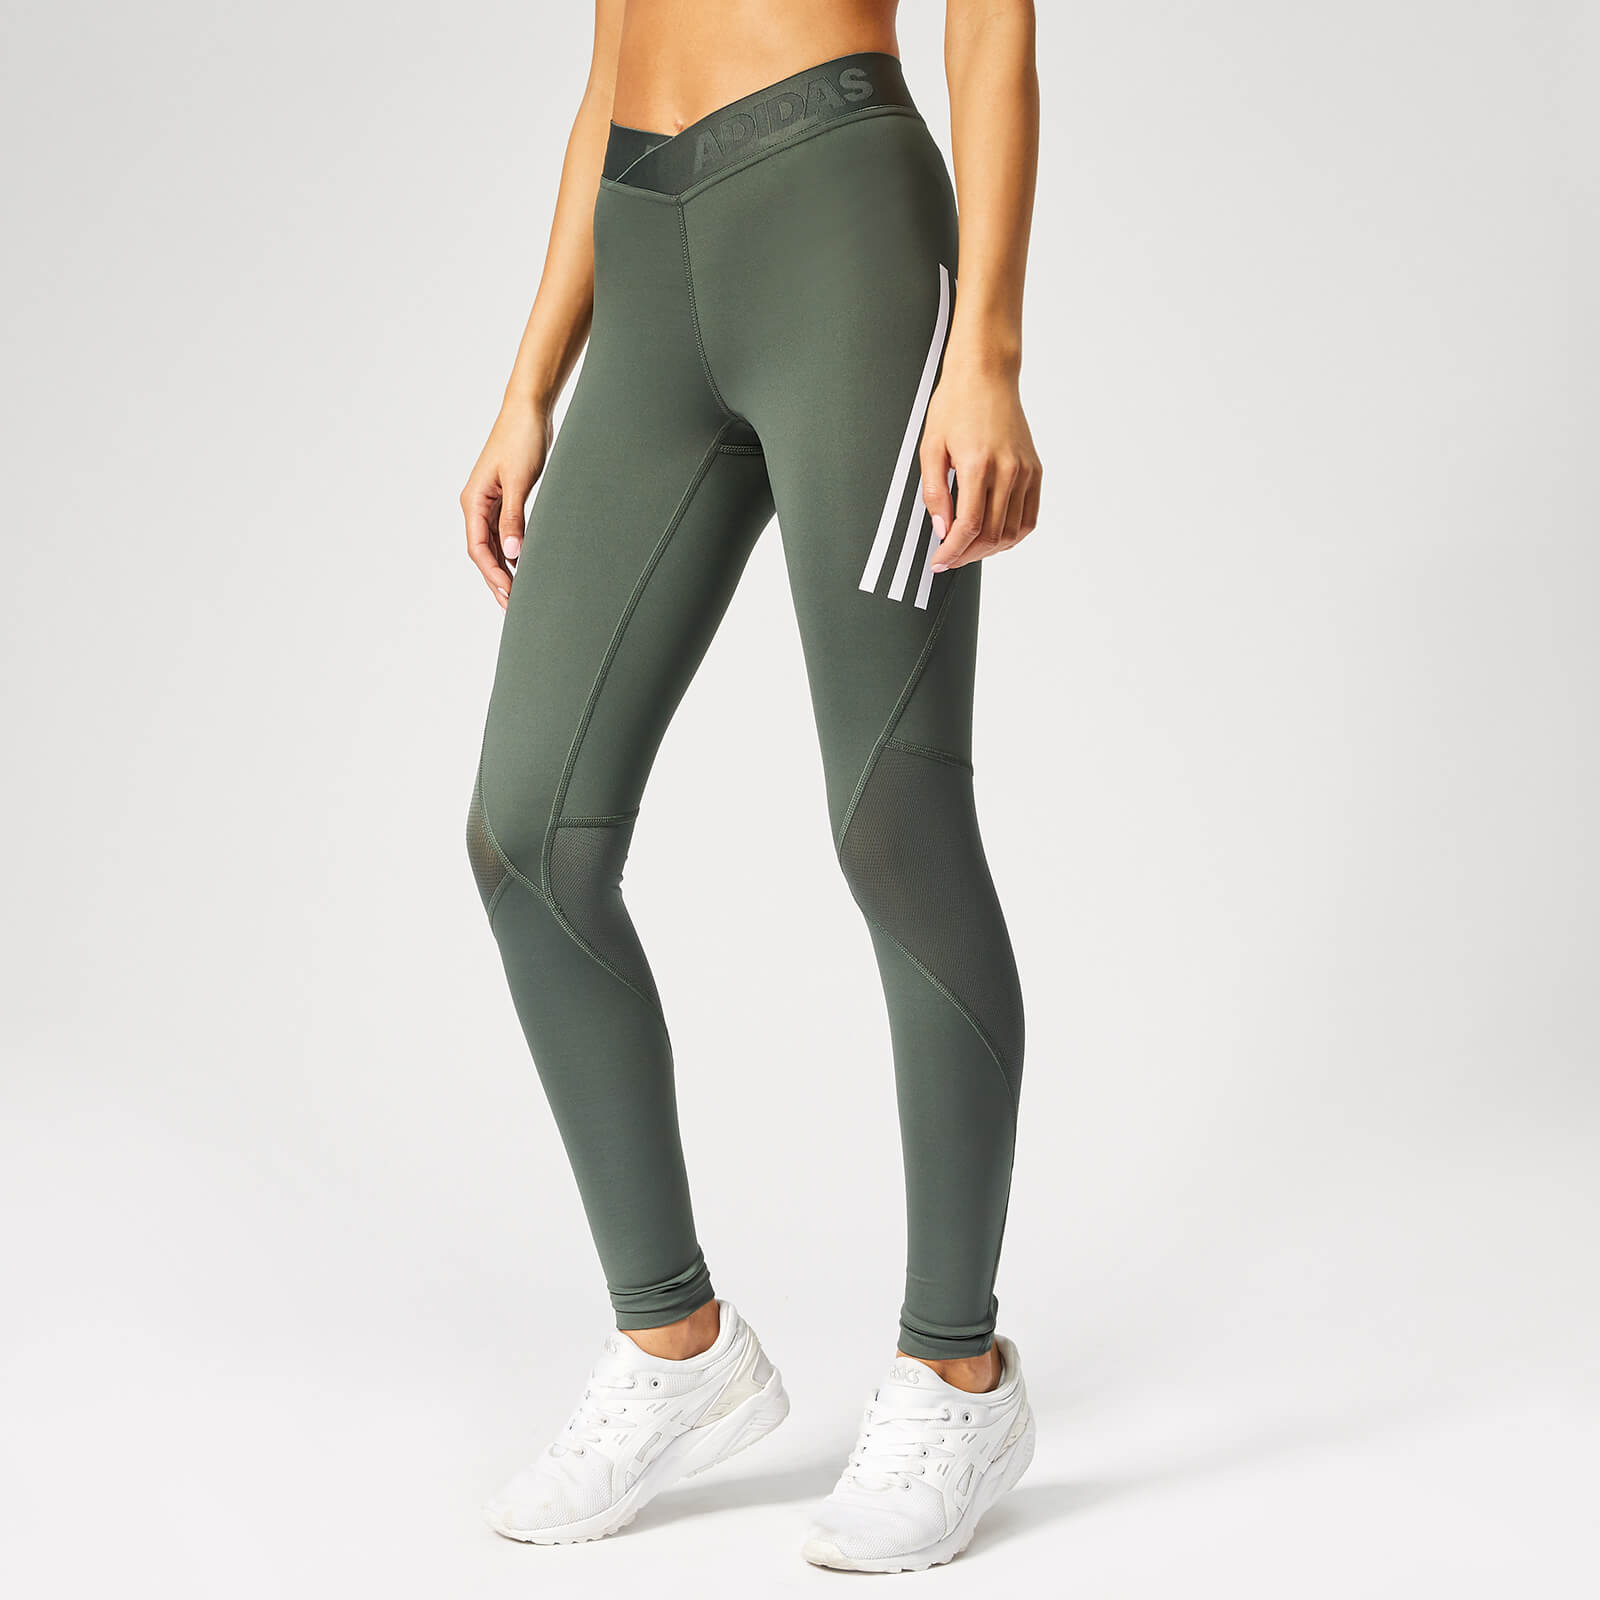 3300d6edef47f adidas Women s Alphaskin Sport 3 Stripe Tights - Legend Ivy Sports    Leisure